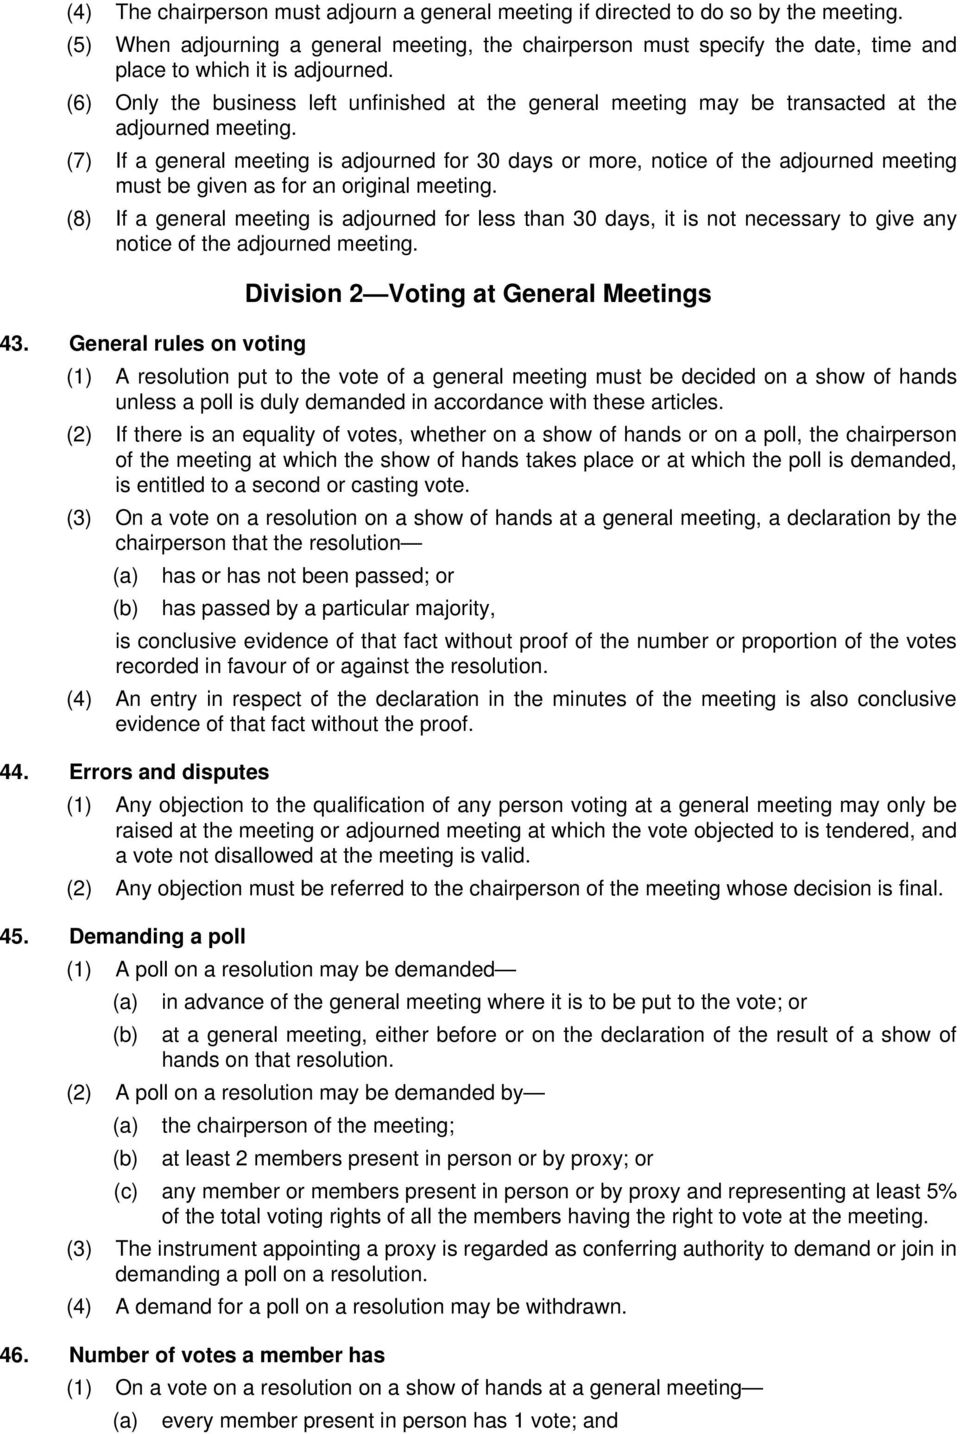 (6) Only the business left unfinished at the general meeting may be transacted at the adjourned meeting.